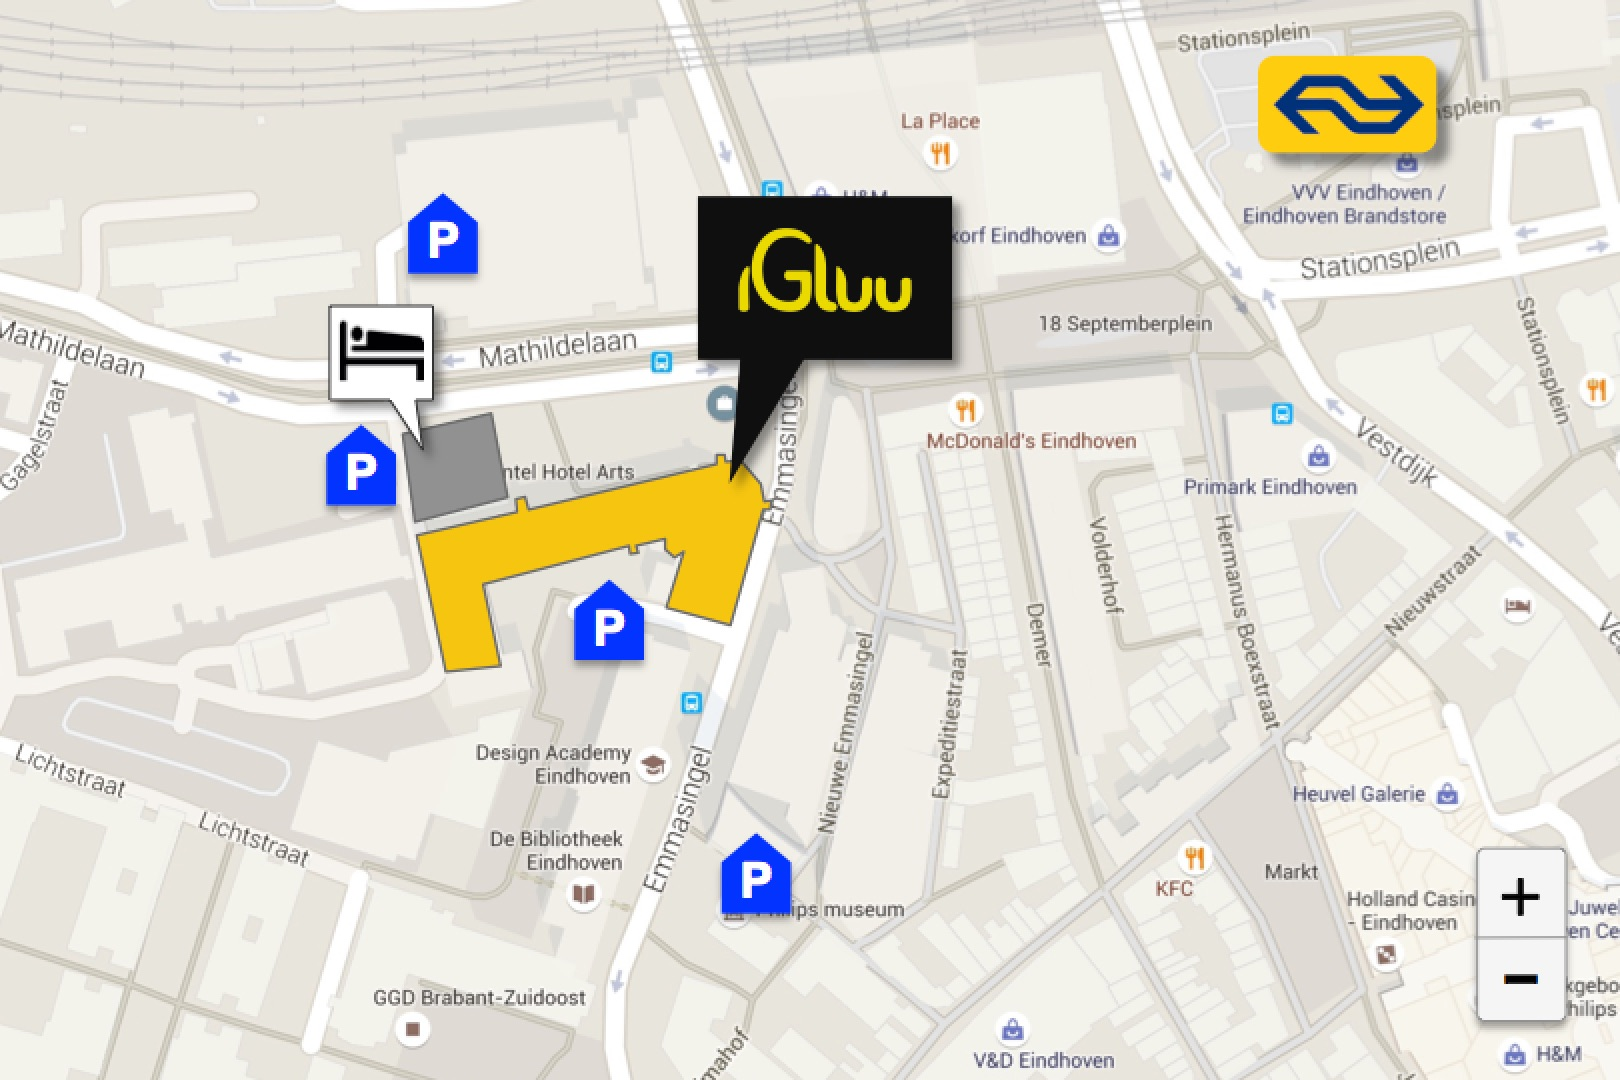 Igluu Eindhoven is located next door to the Inntel Art Hotel, within a few minutes walking distance from the Central Station and surrounded by multiple parking garages.